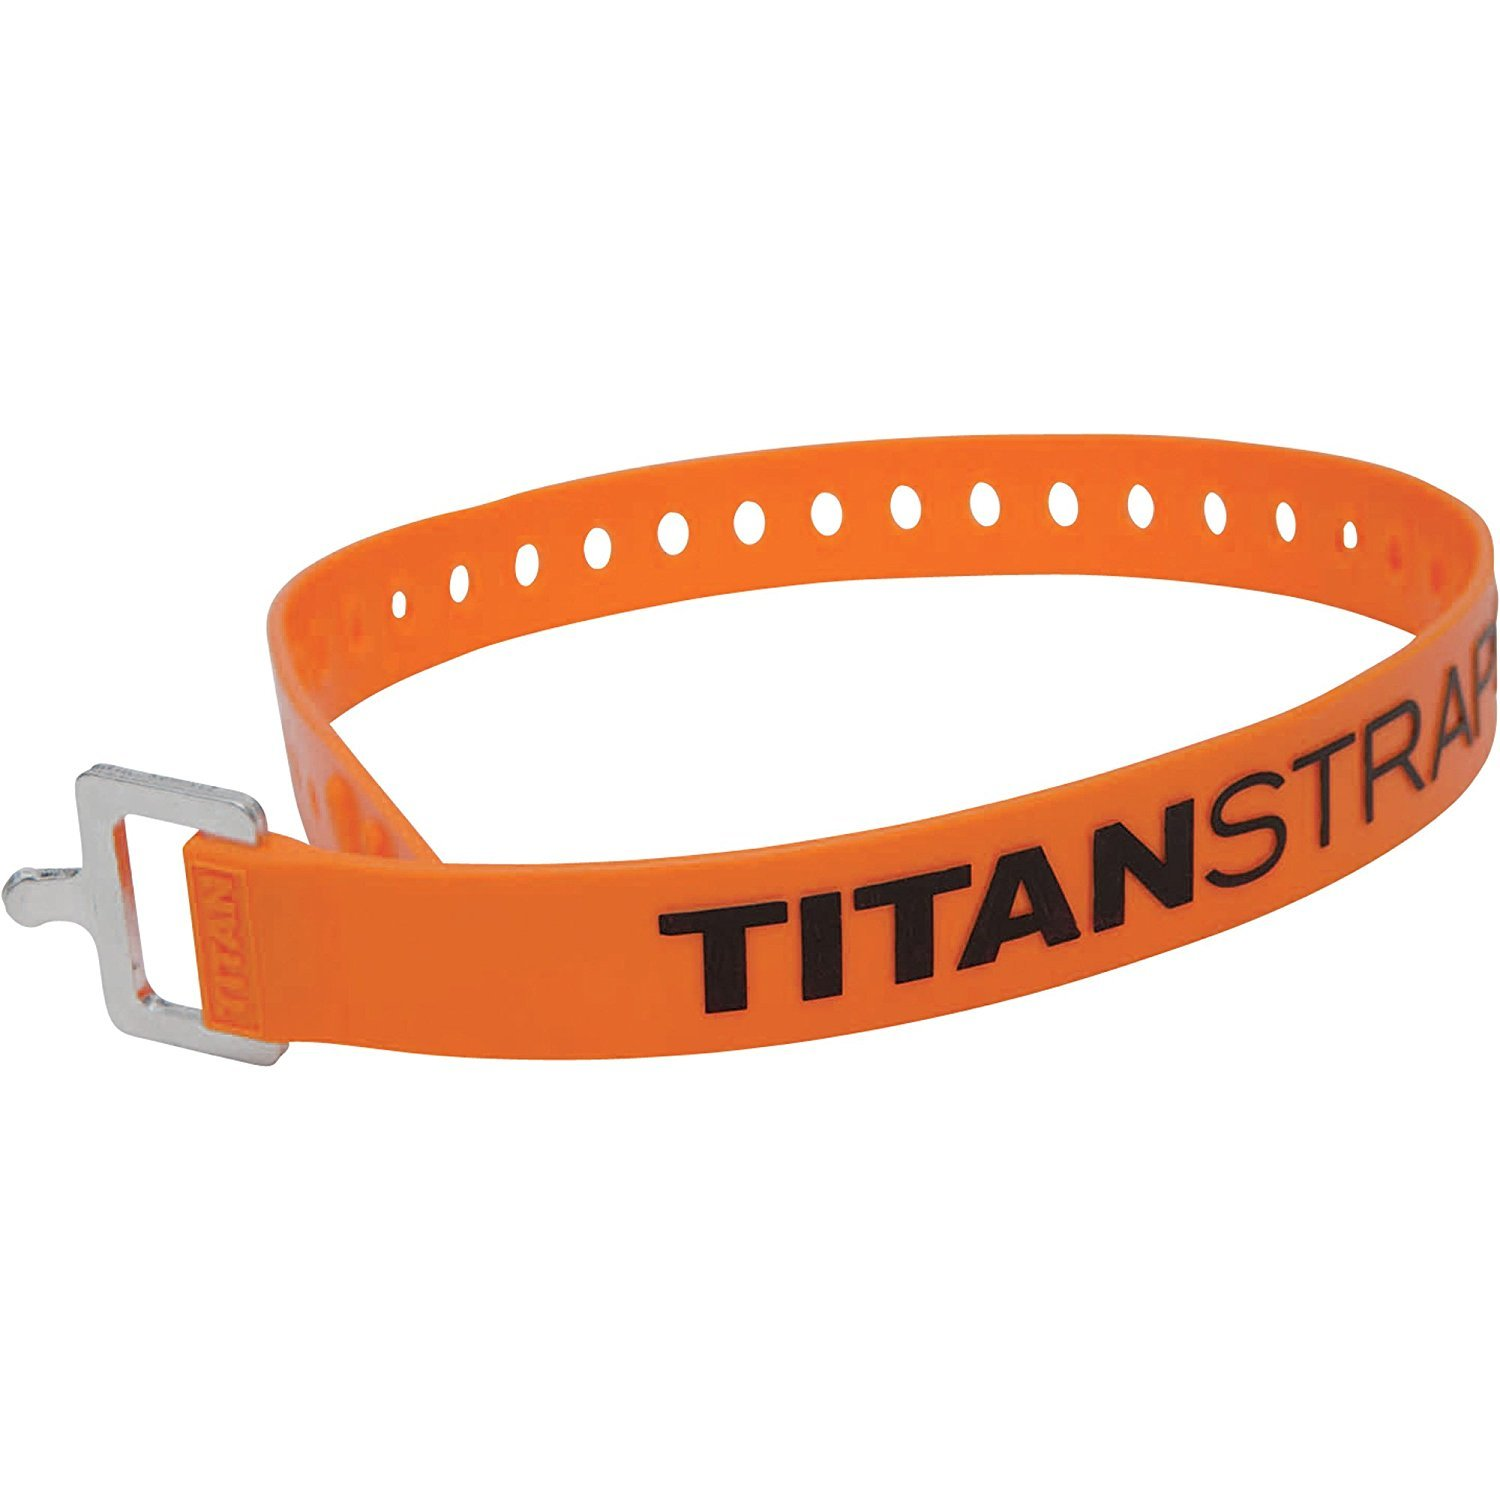 4-Pack of 25Inch Titan Straps - 70-Lb. Working Load Ea, Model# TS-0125X4-O by TitanStraps